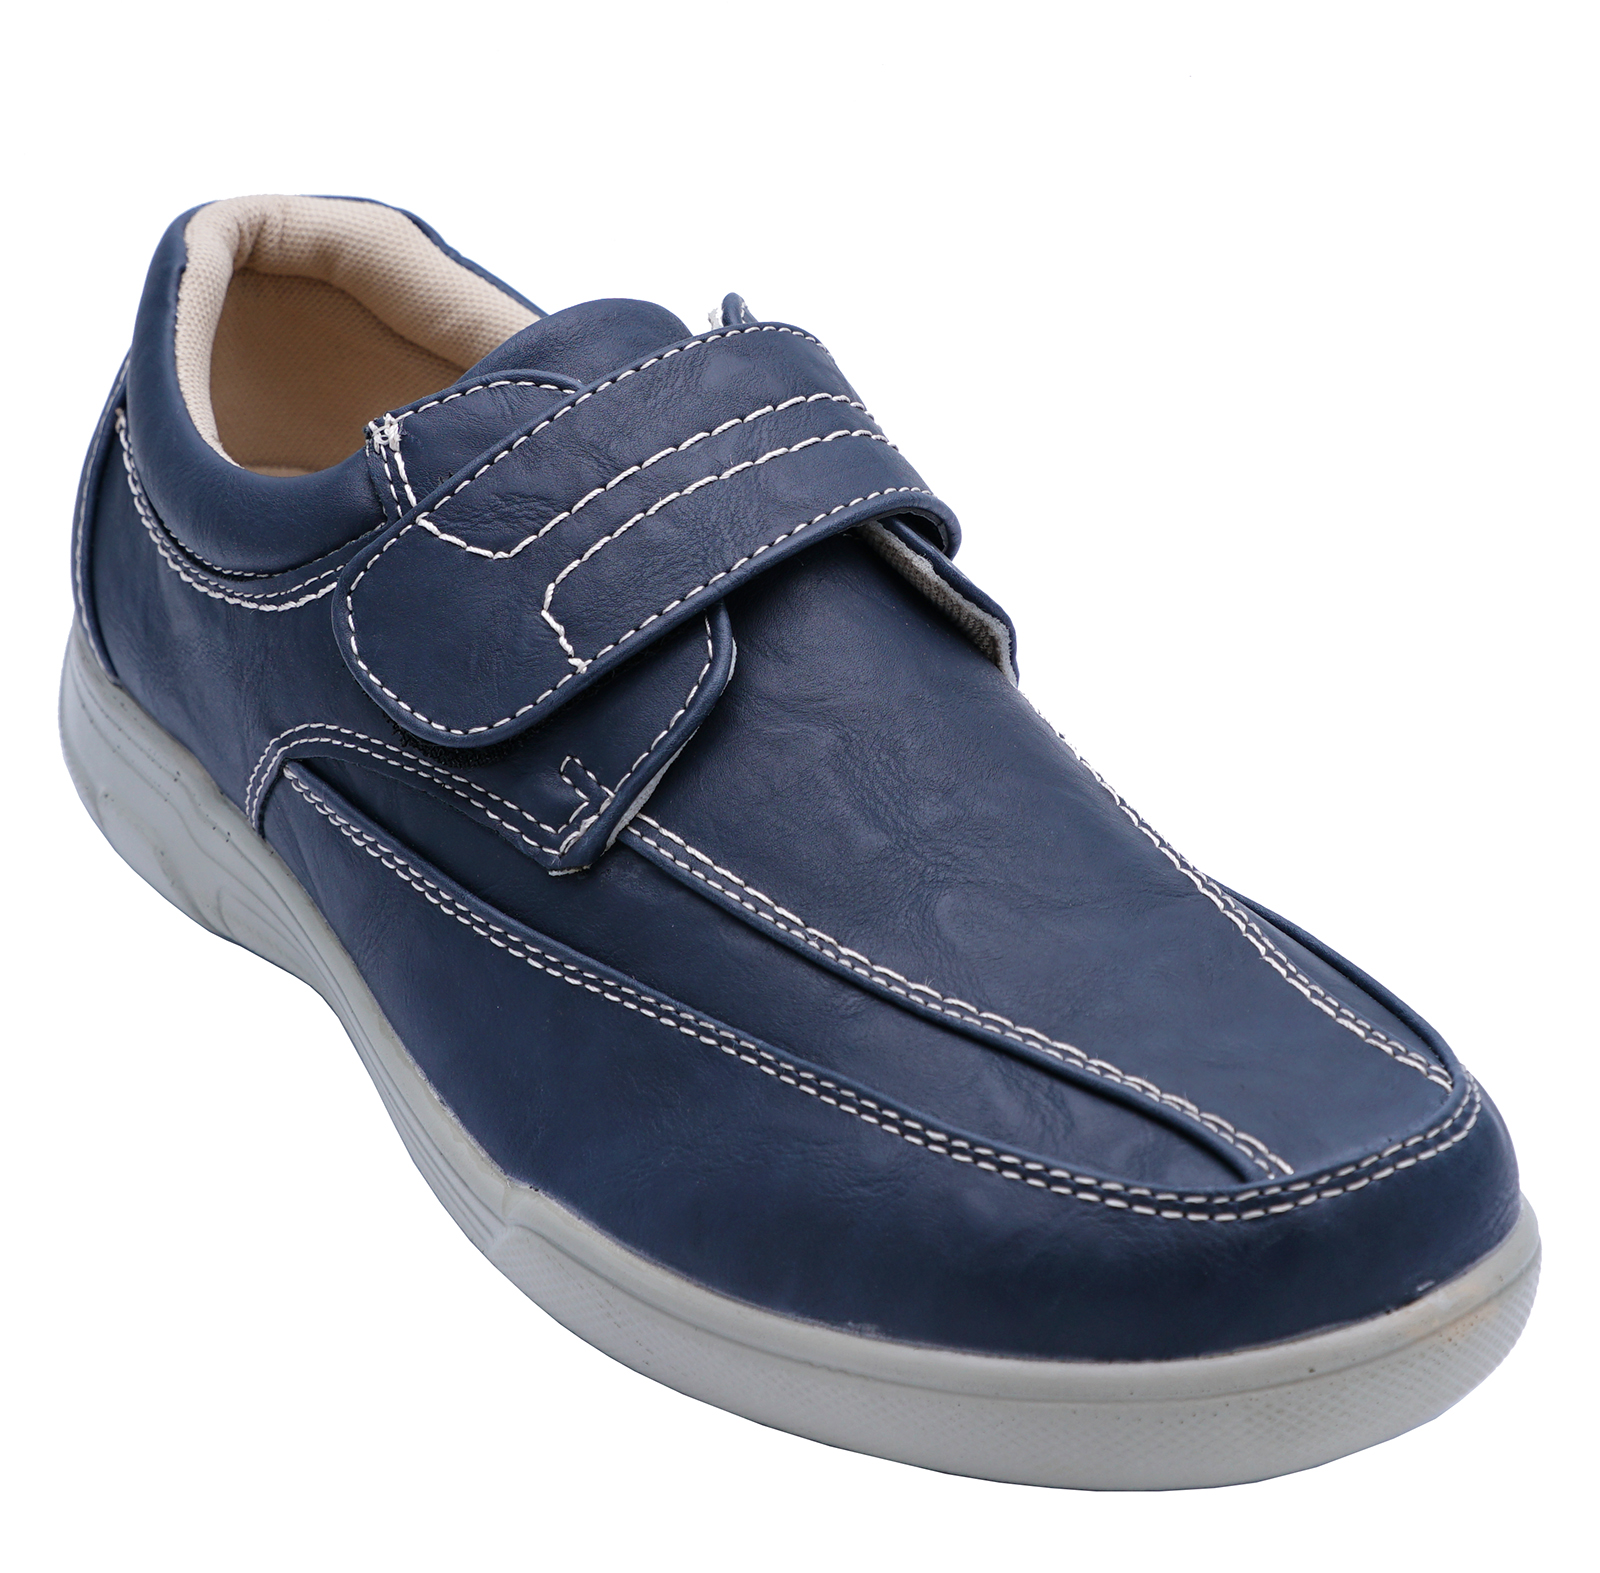 thumbnail 6 - MENS-NAVY-TOUCH-STRAP-COMFY-LIGHTWEIGHT-SMART-CASUAL-LOAFERS-DECK-SHOES-6-12